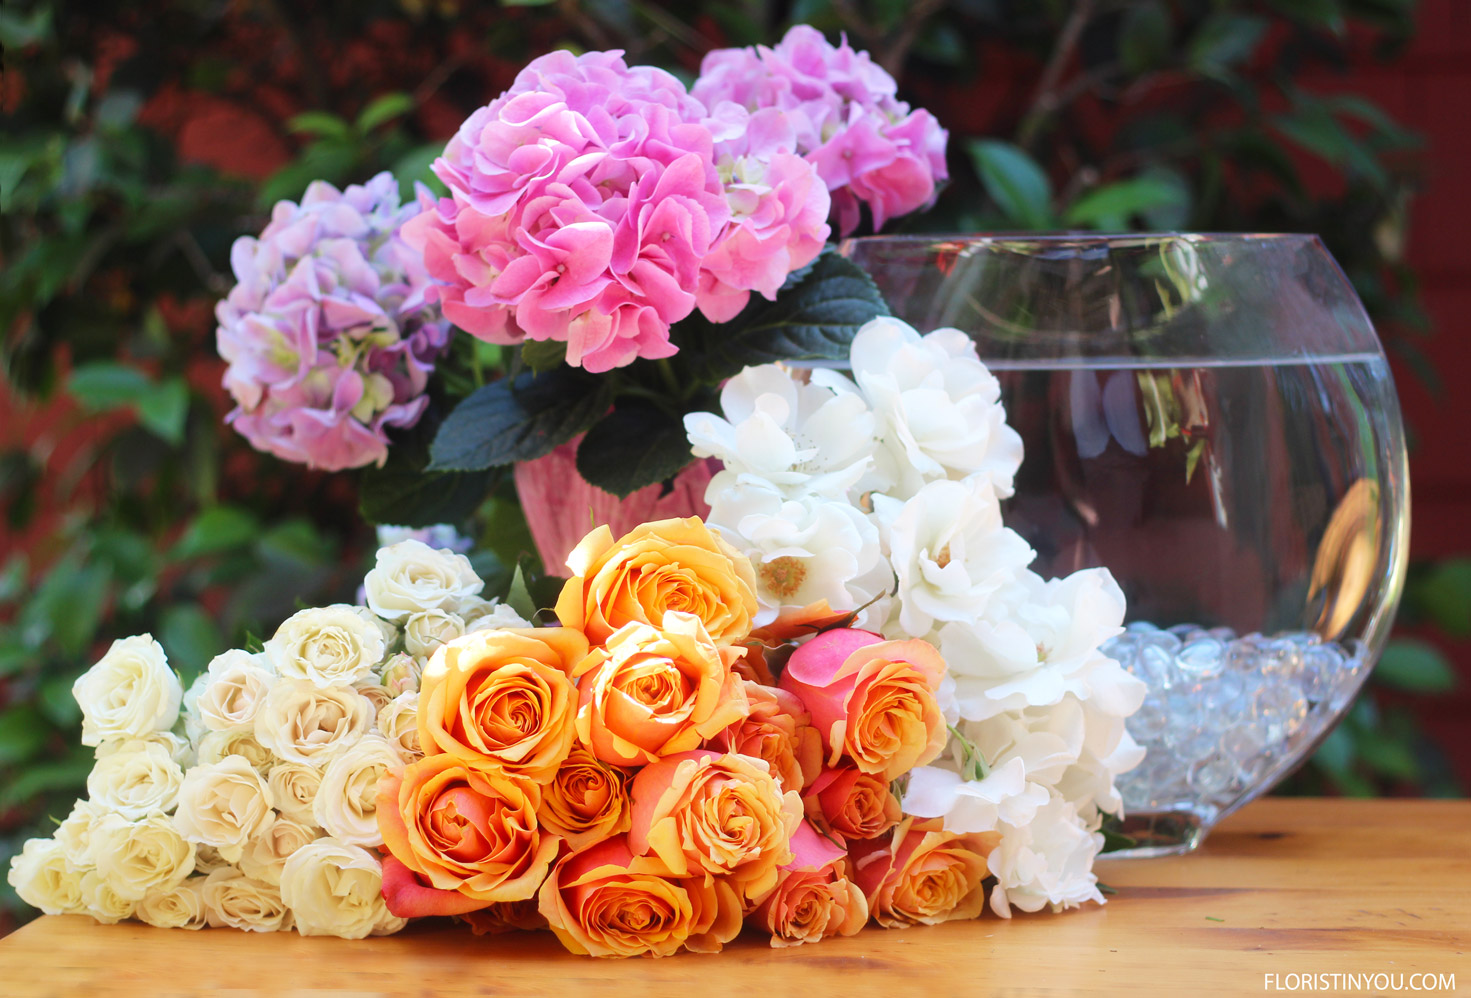 Here are the flowers that you will use.